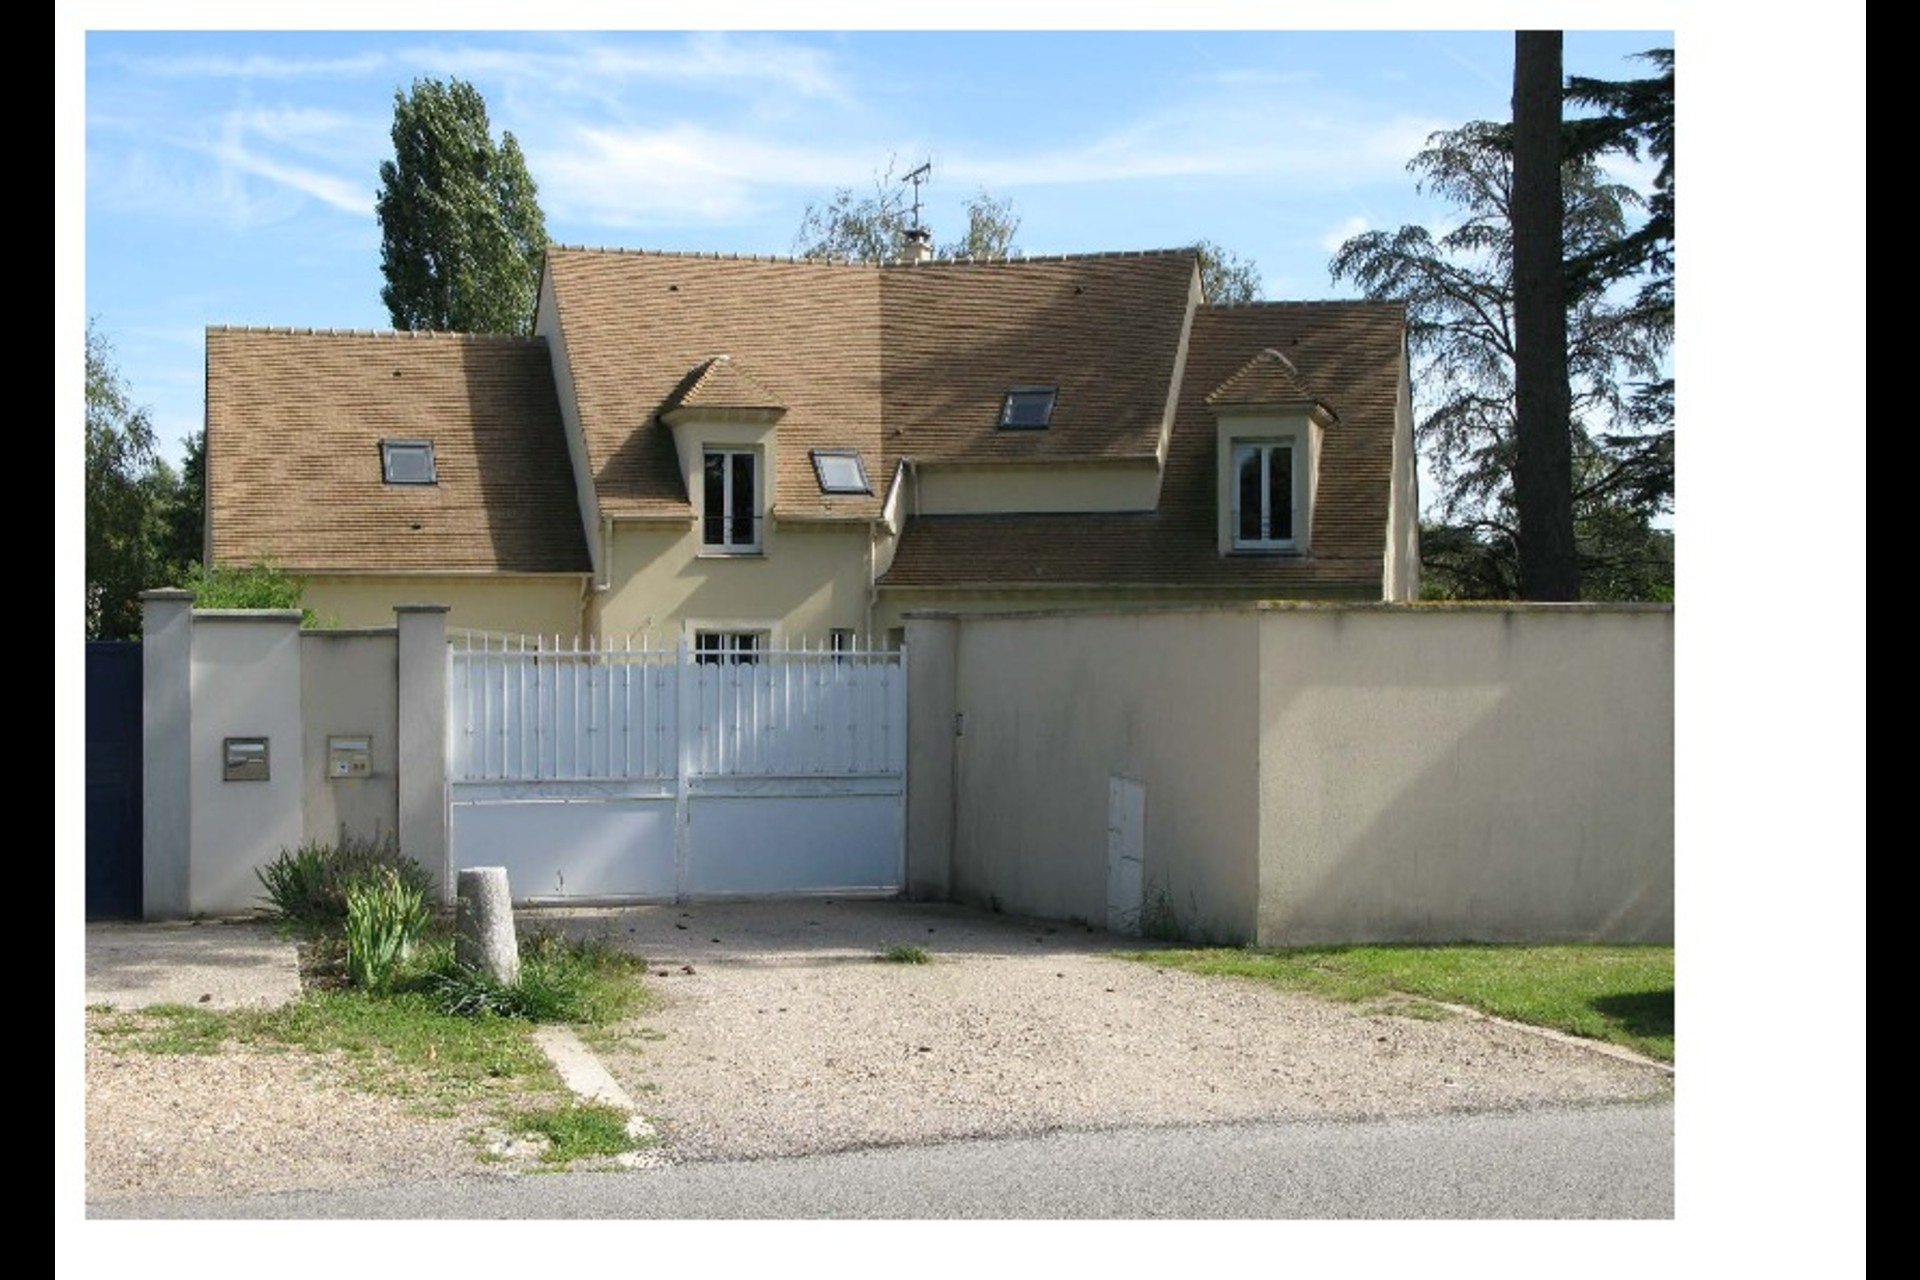 image 4 - House For rent feucherolles - 9 rooms